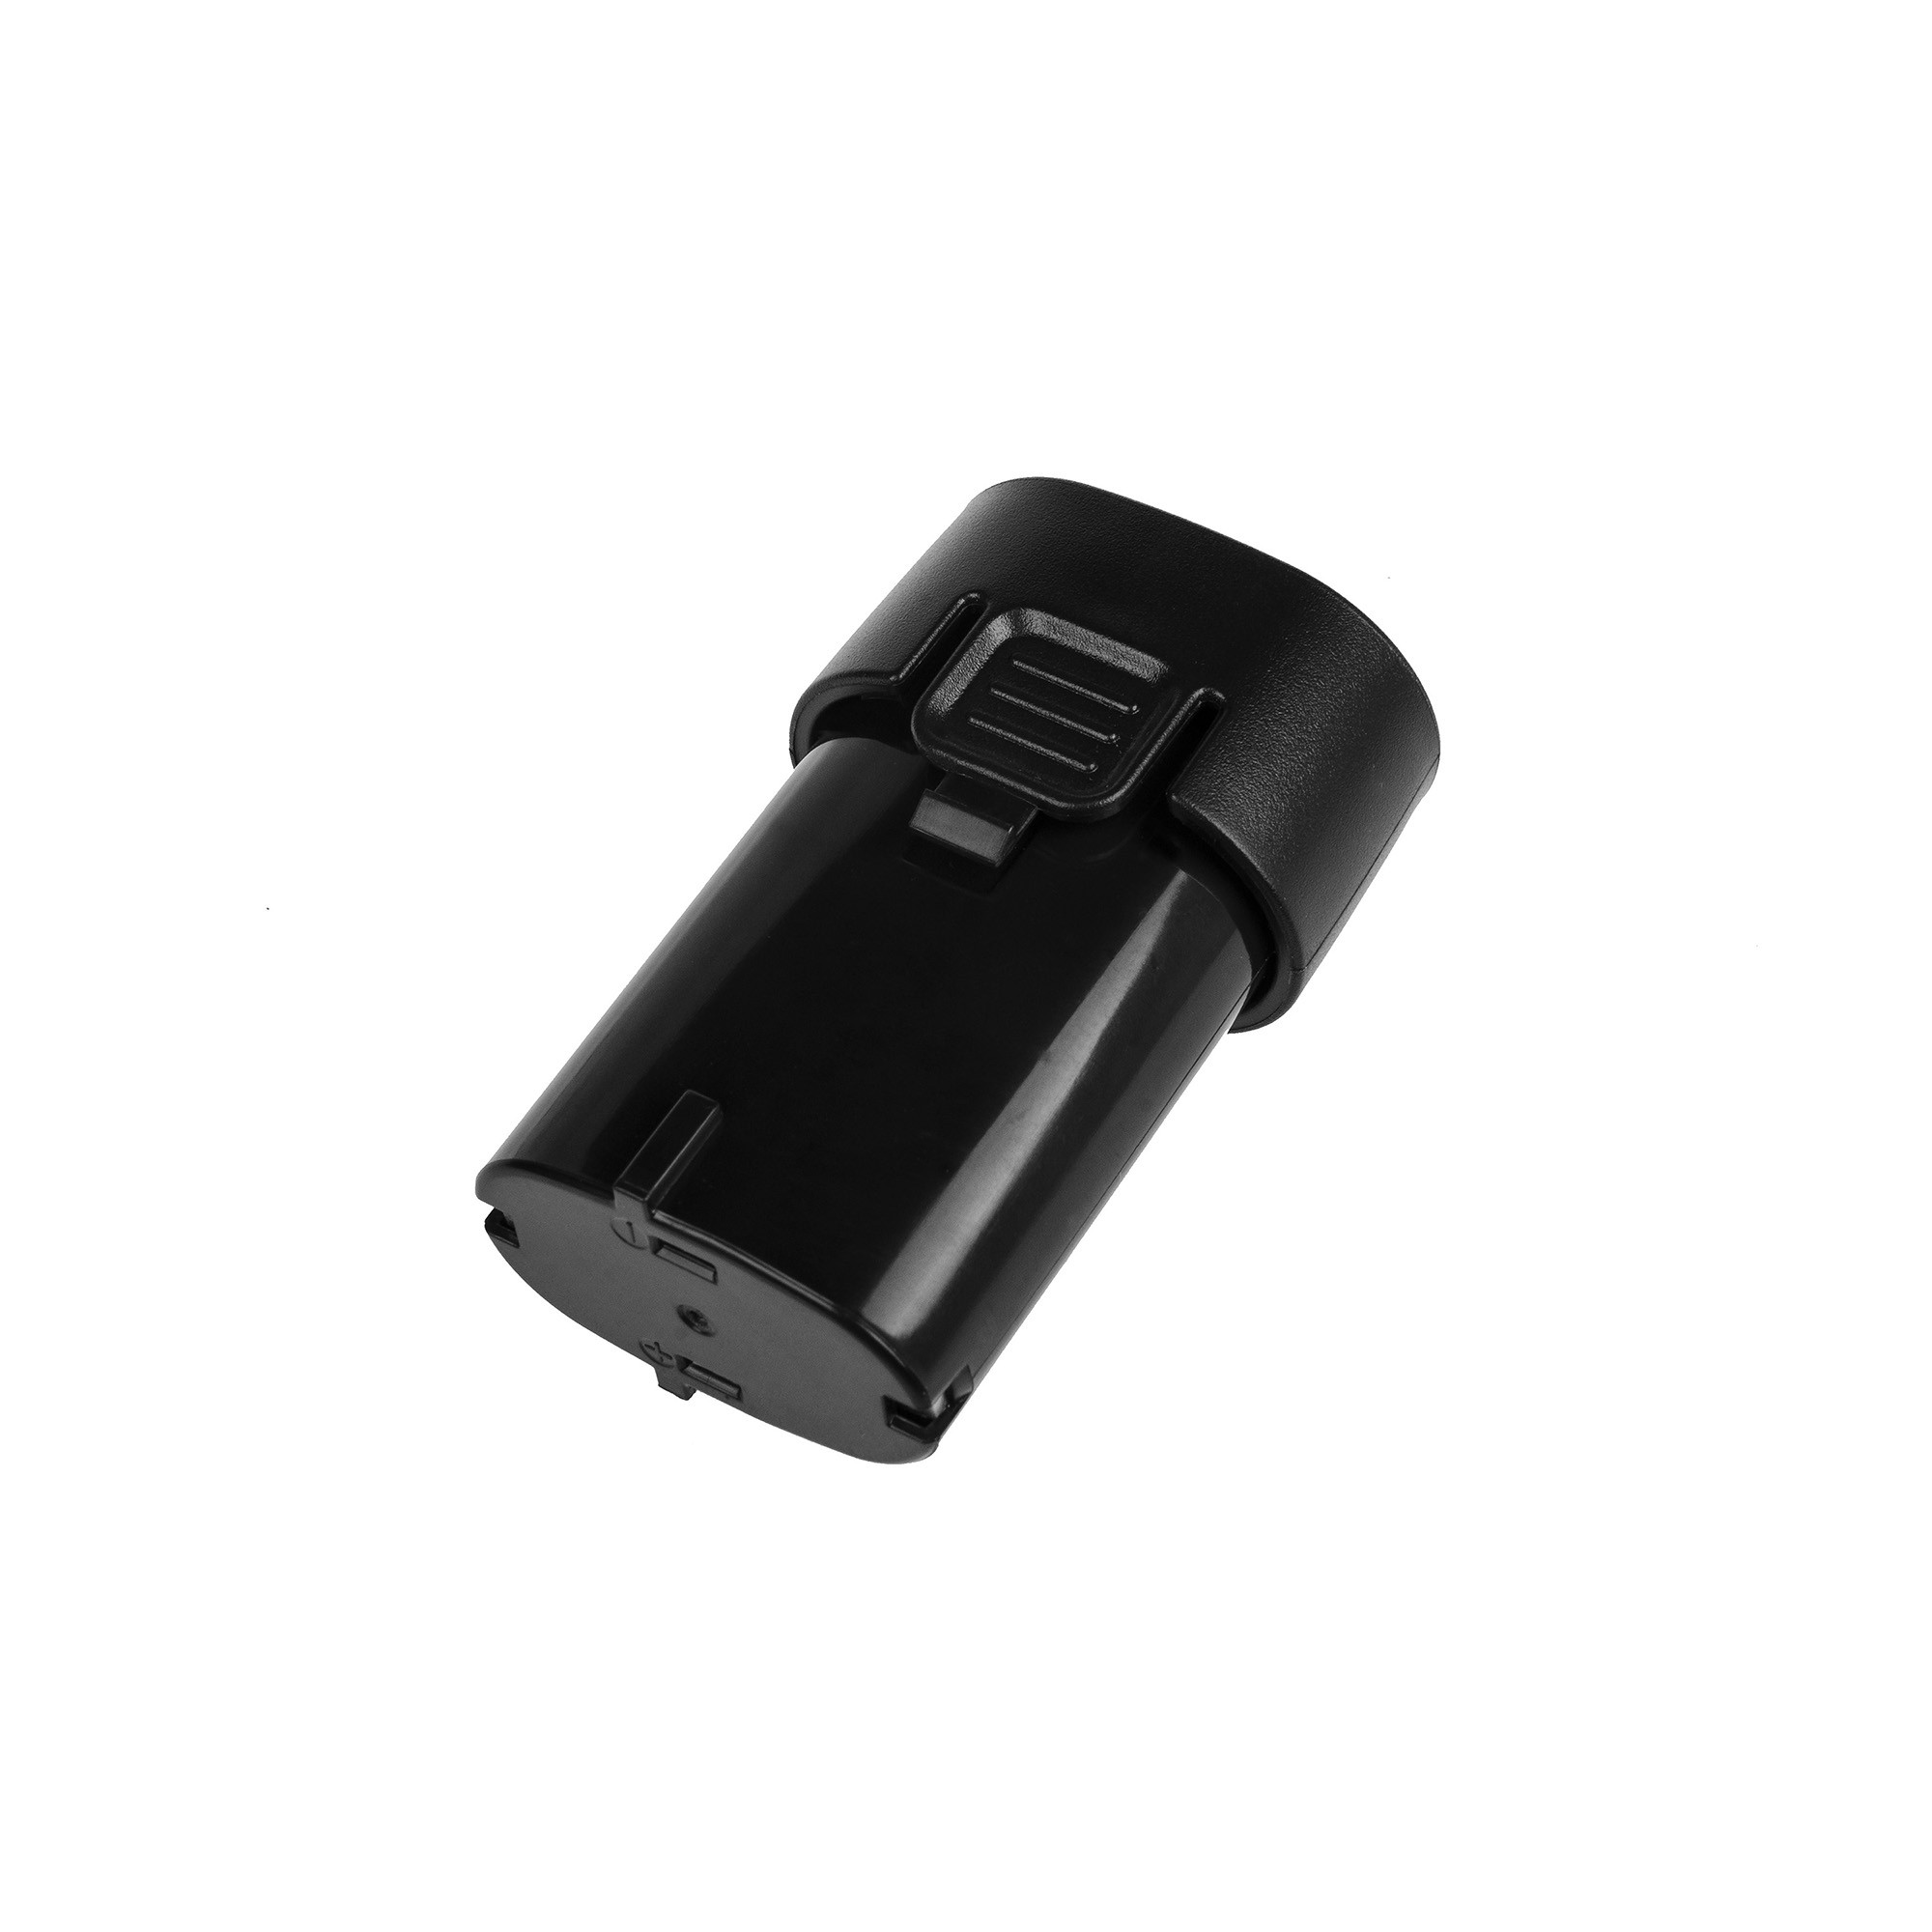 Green Cell Power Tool Battery BL7010 BL0715 for Makita CL070 CL072 DF010 DF012 TD020 TD021 TD022